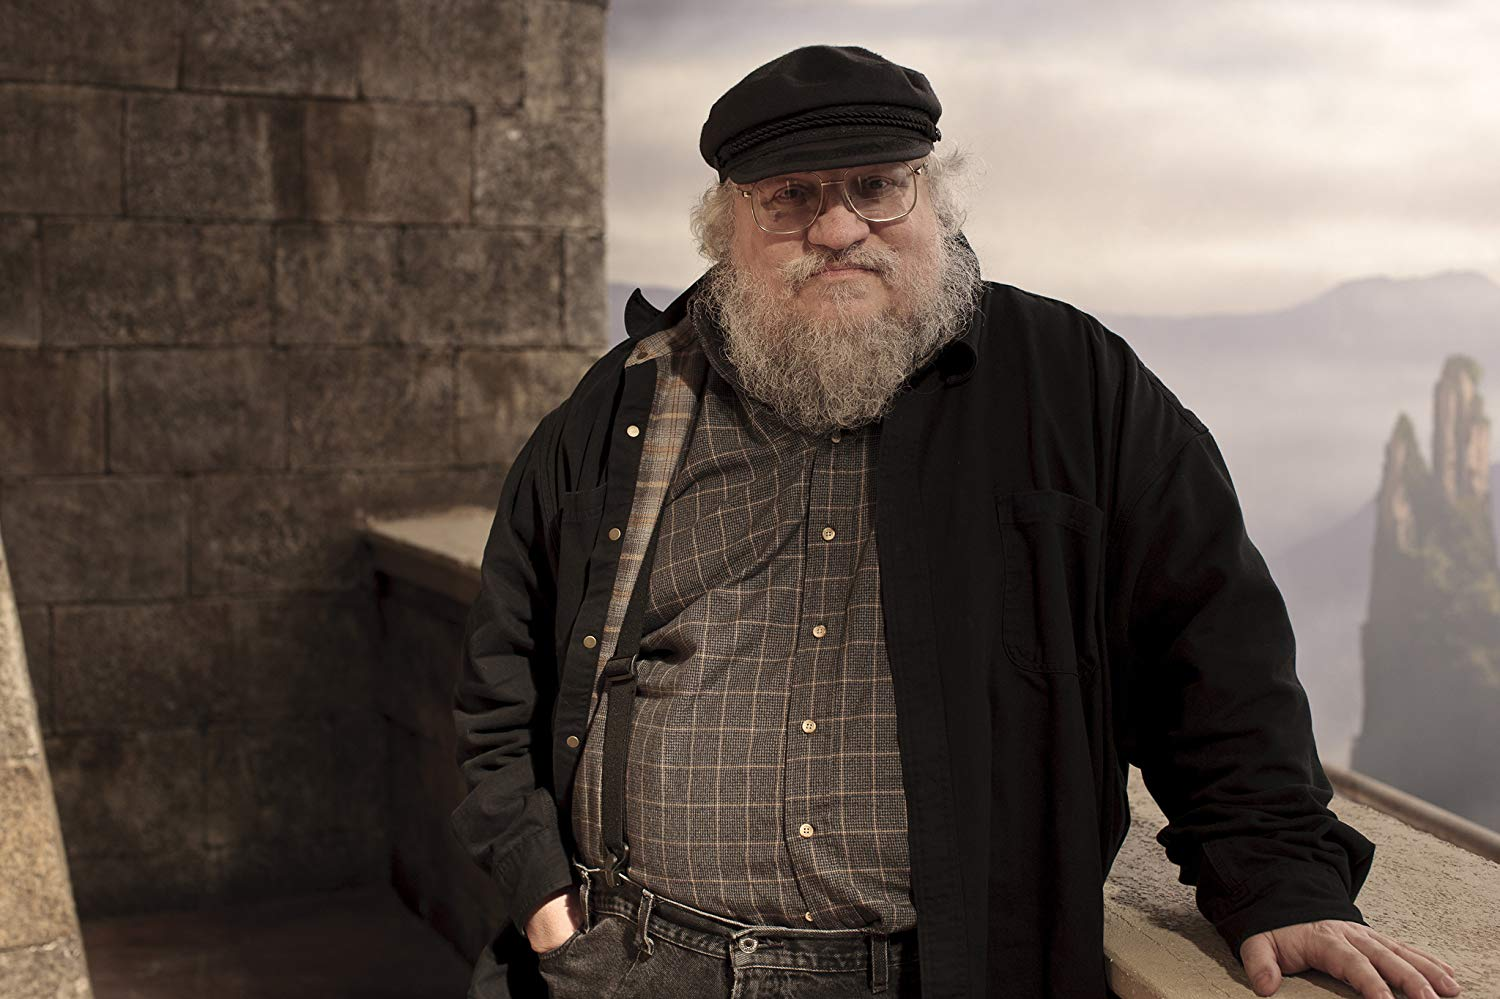 George R.R. Martin, author of the A Song of Fire and Ice book series that is the source of Game of Thrones